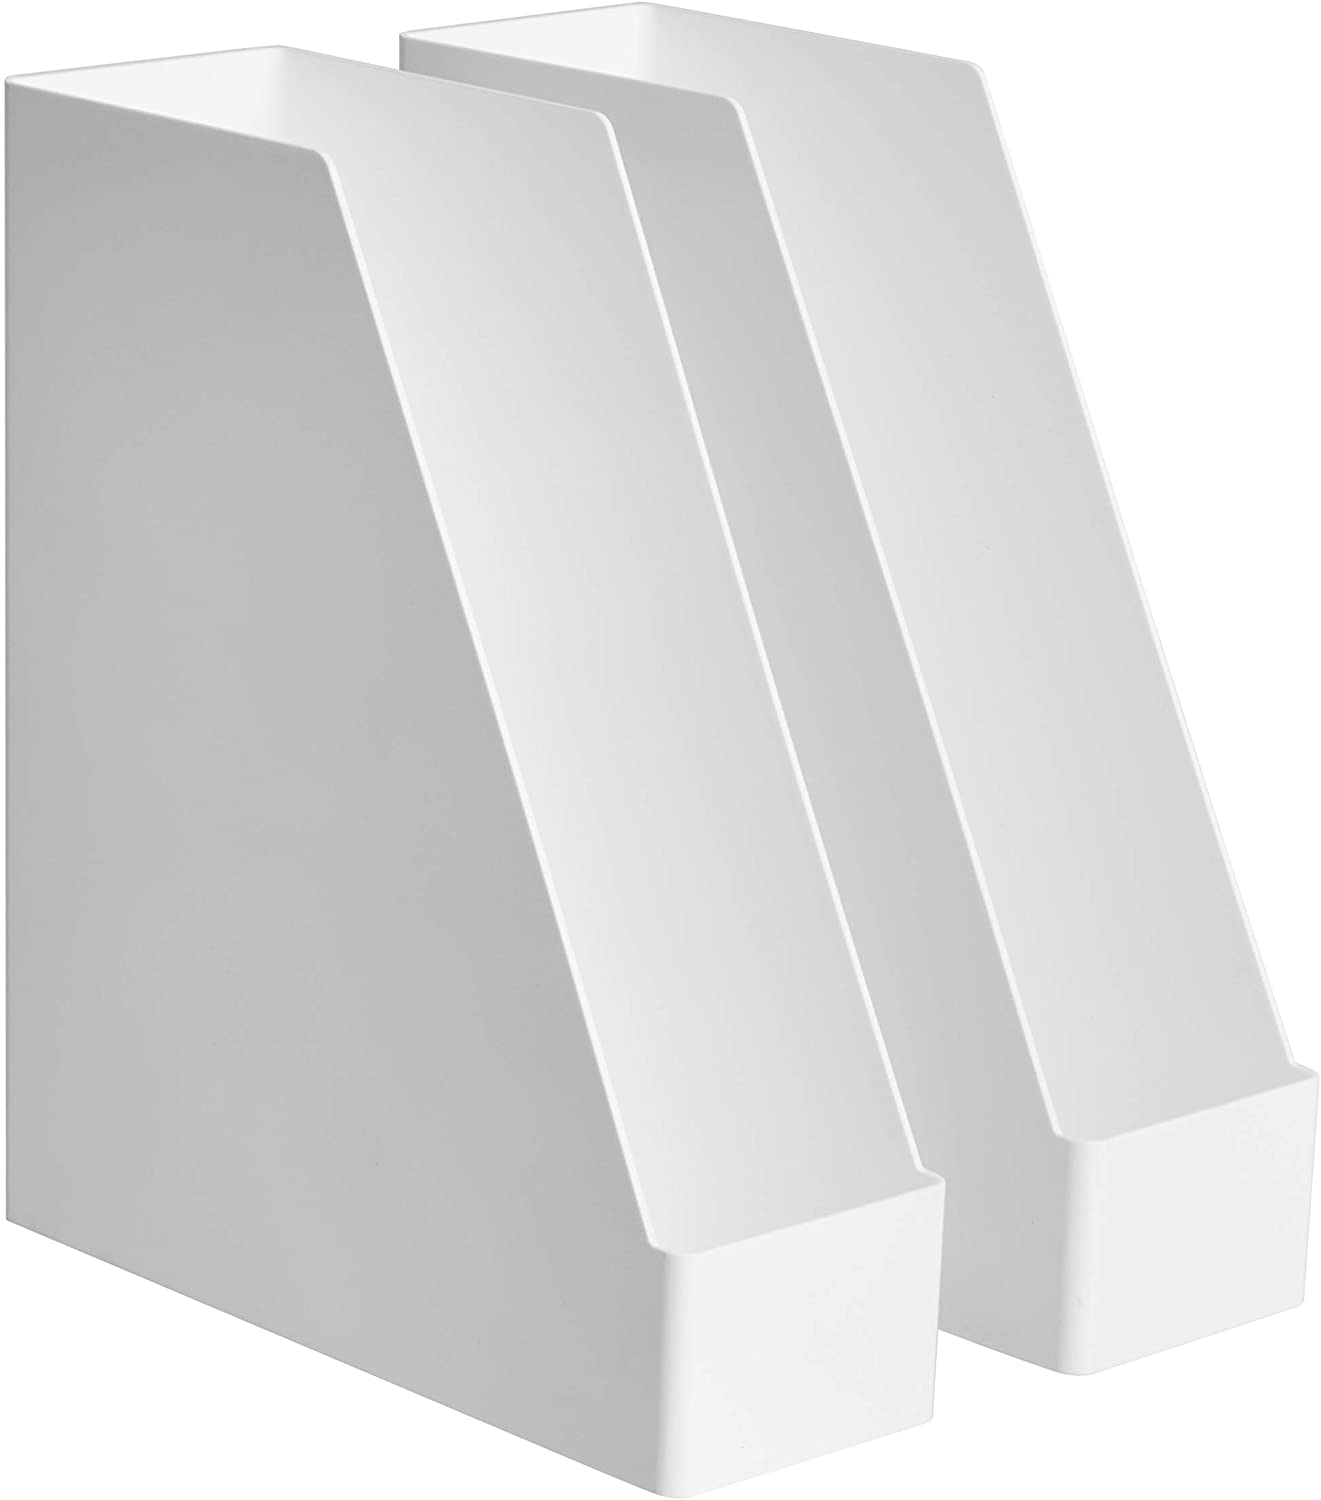 AmazonBasics Plastic Desk Organizer - Magazine Rack, White, 2-Pack